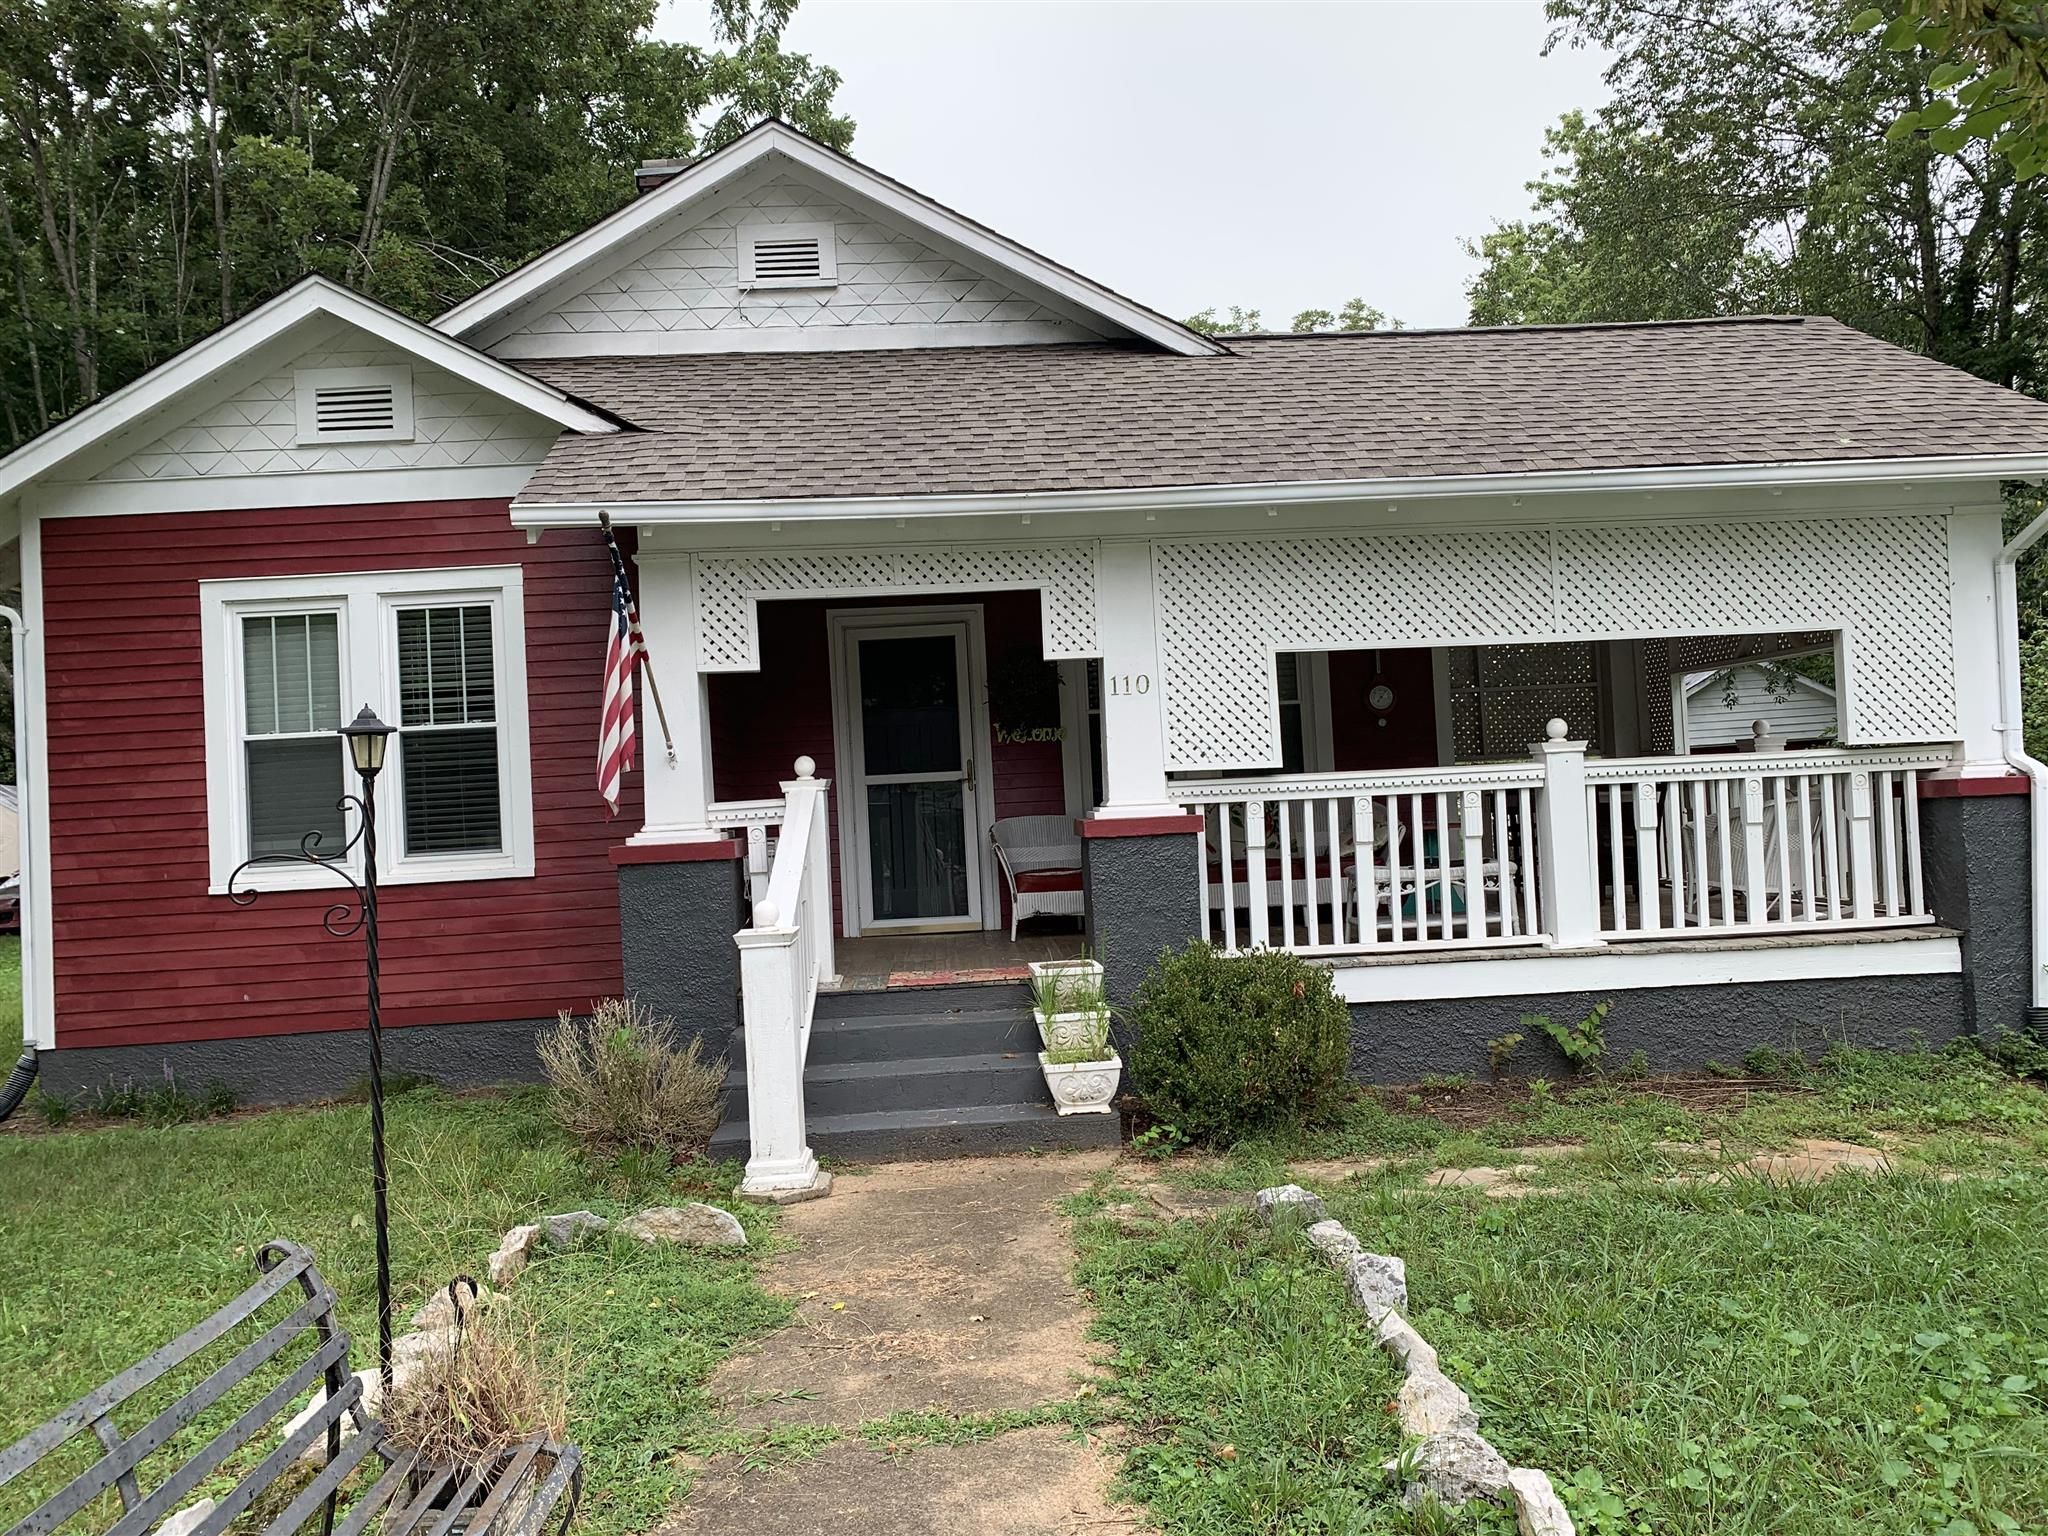 110 Garfield St, McMinnville, TN 37110 - McMinnville, TN real estate listing